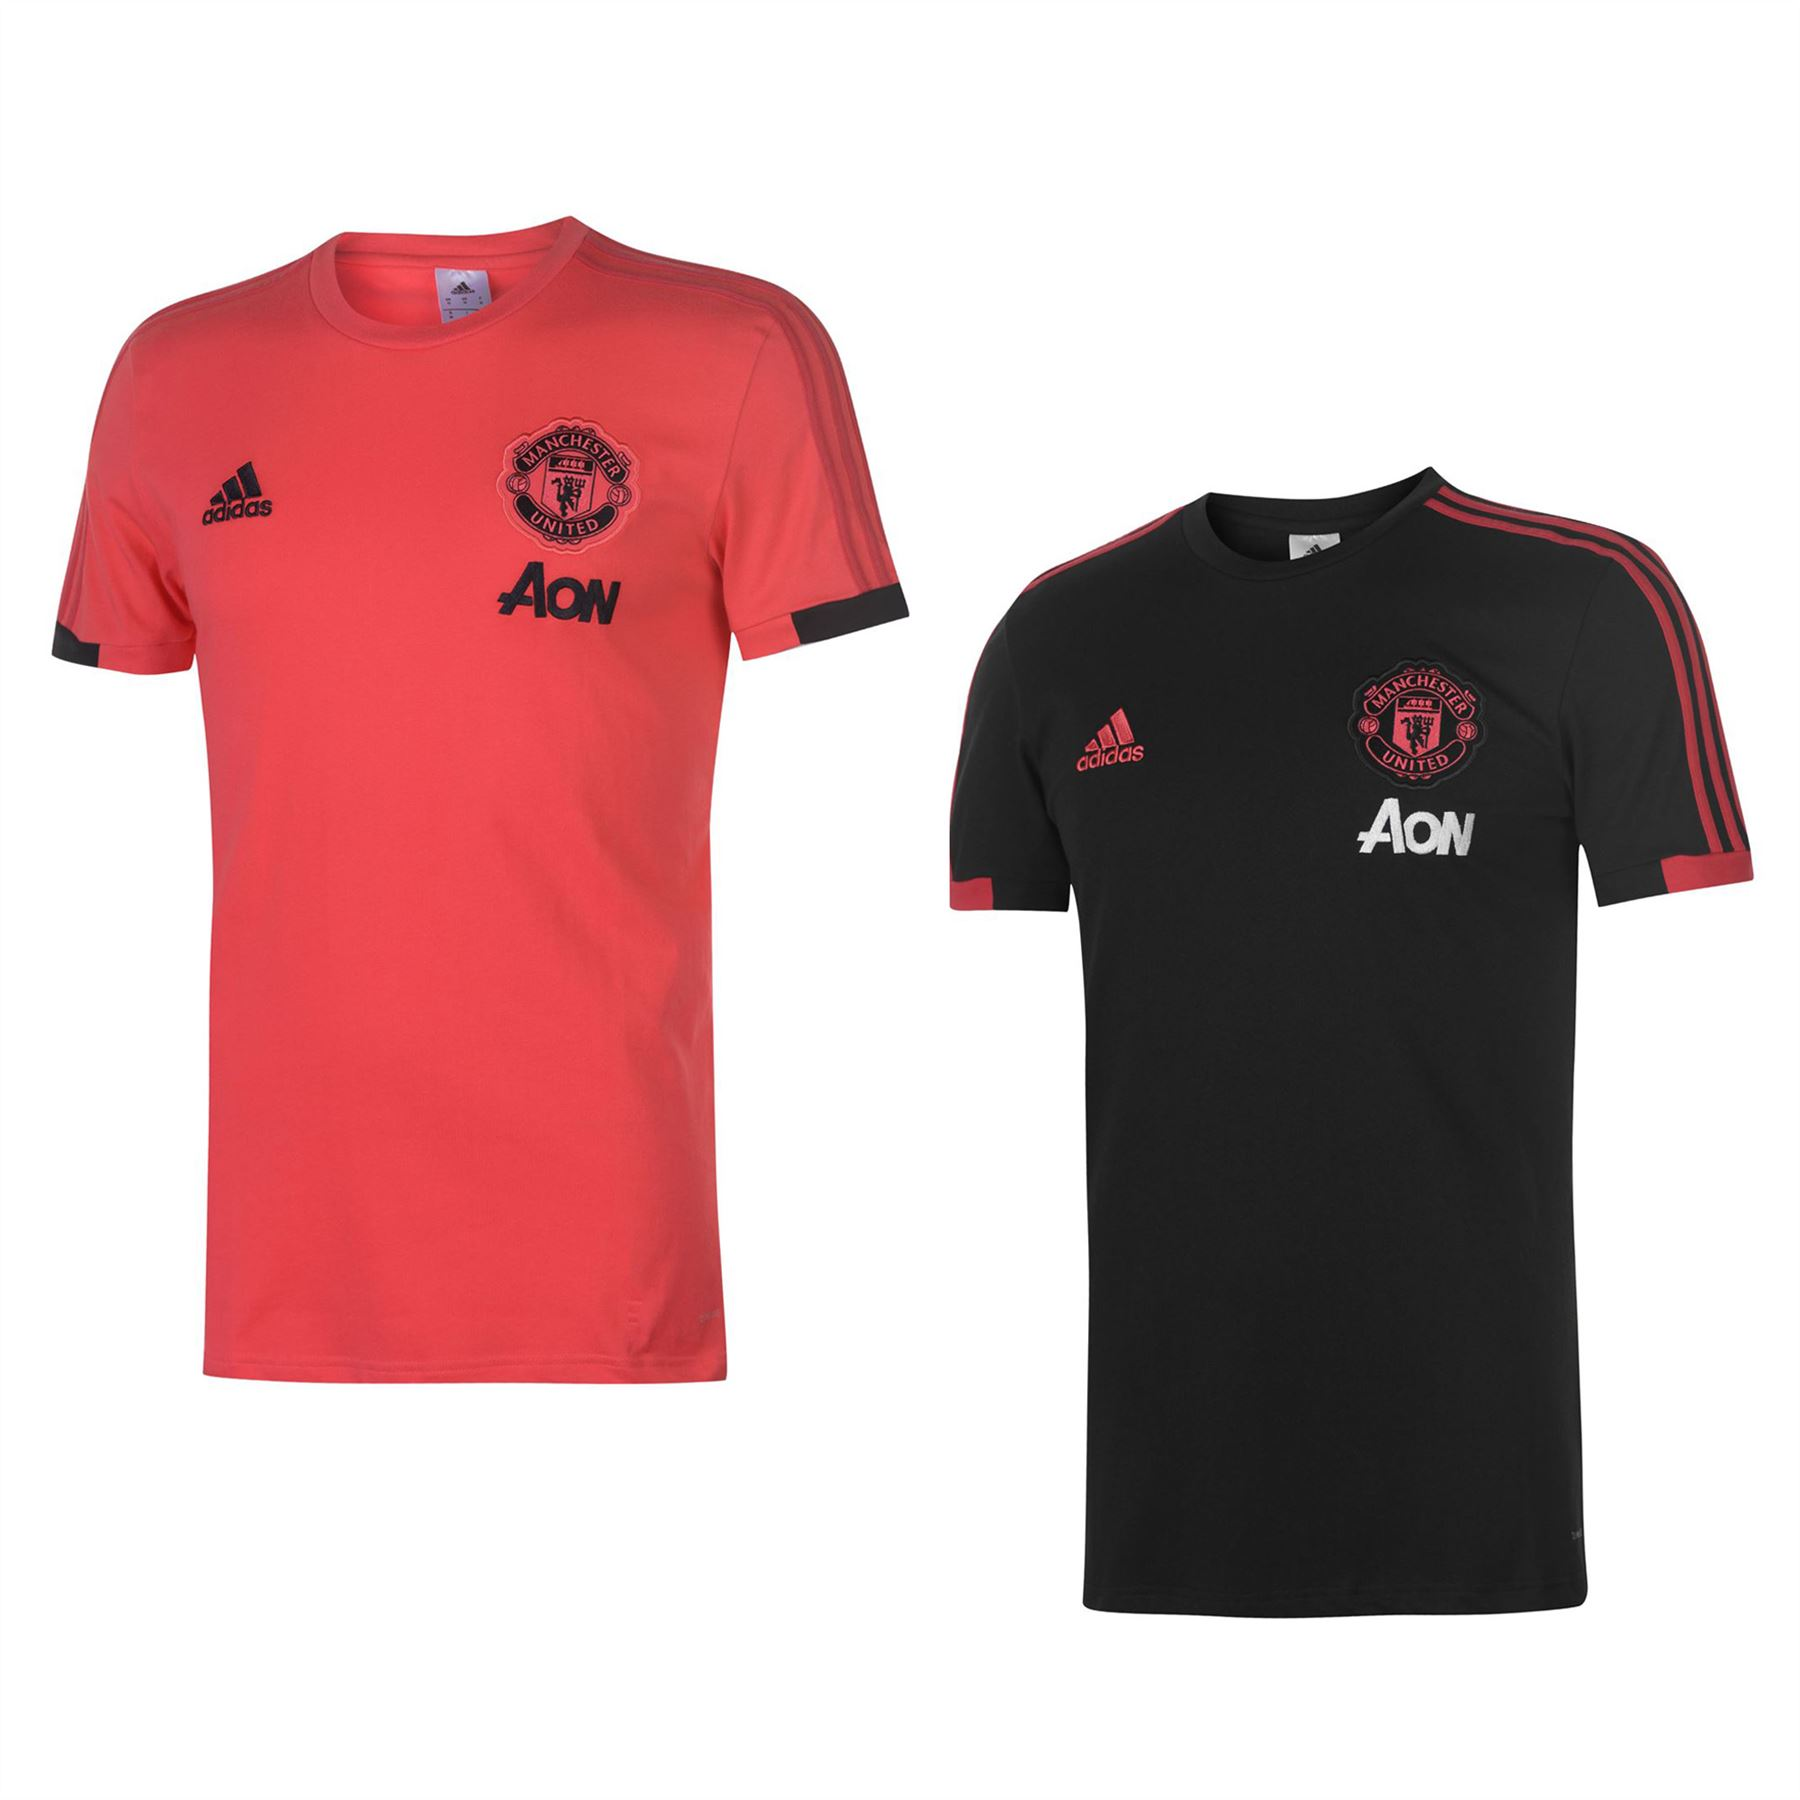 free shipping a4a30 d283d Details about adidas Manchester United T-Shirt 2018 2019 Mens Football  Soccer Top Tee